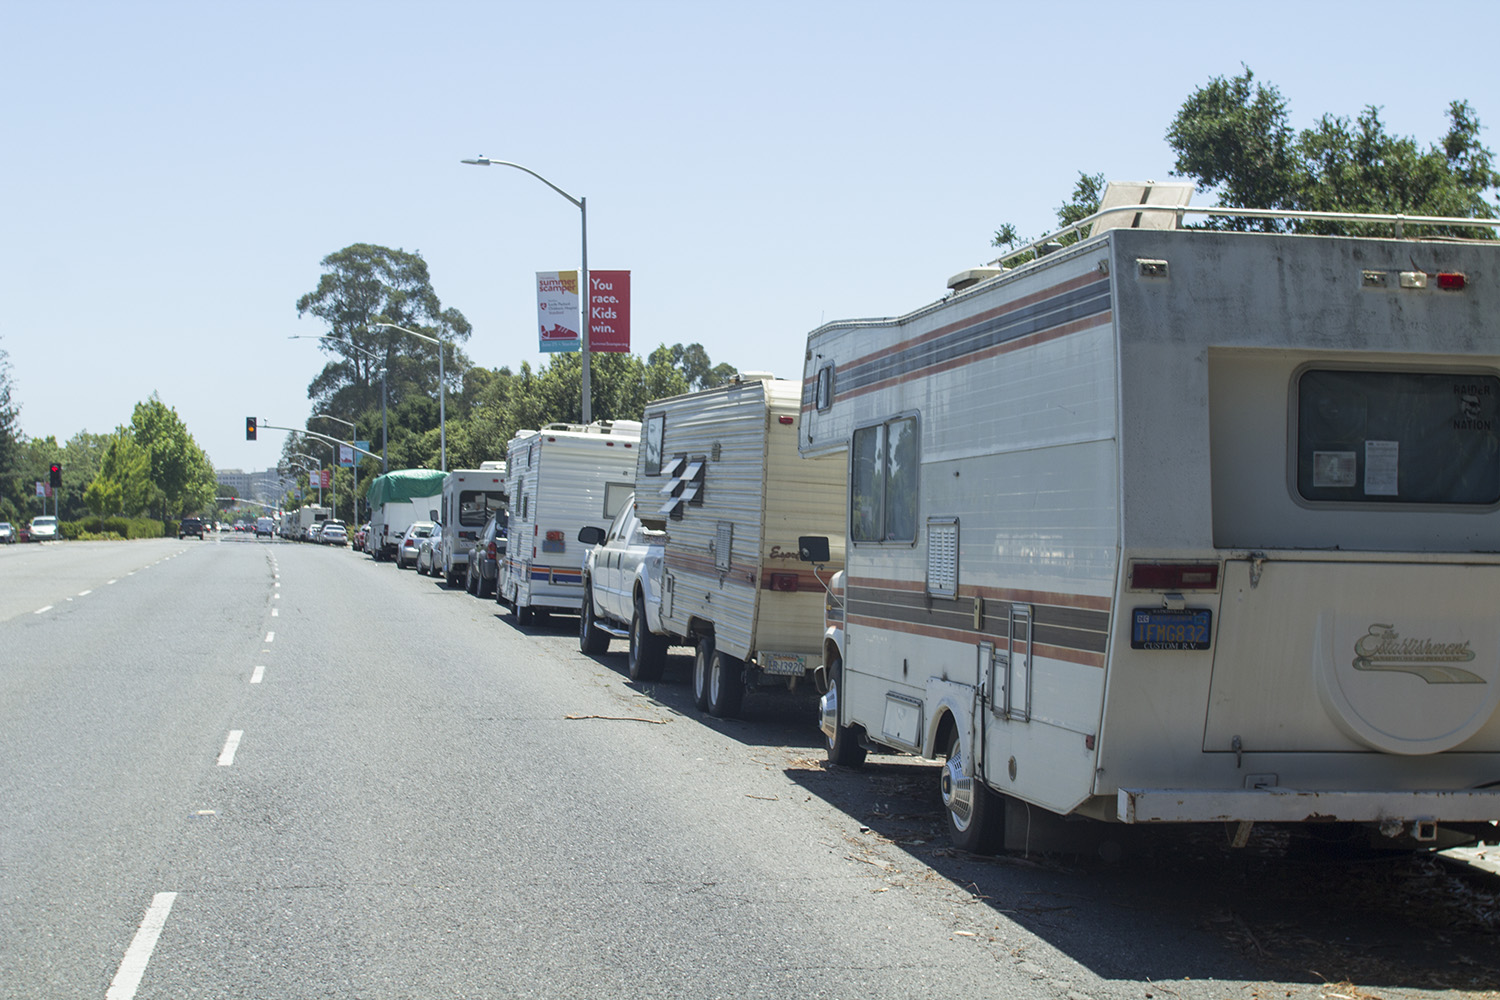 A long line of RVs and trailers parked along El Camino Real stretching from Galvez Street down to Stanford Avenue. Photo by Ben Hacker.